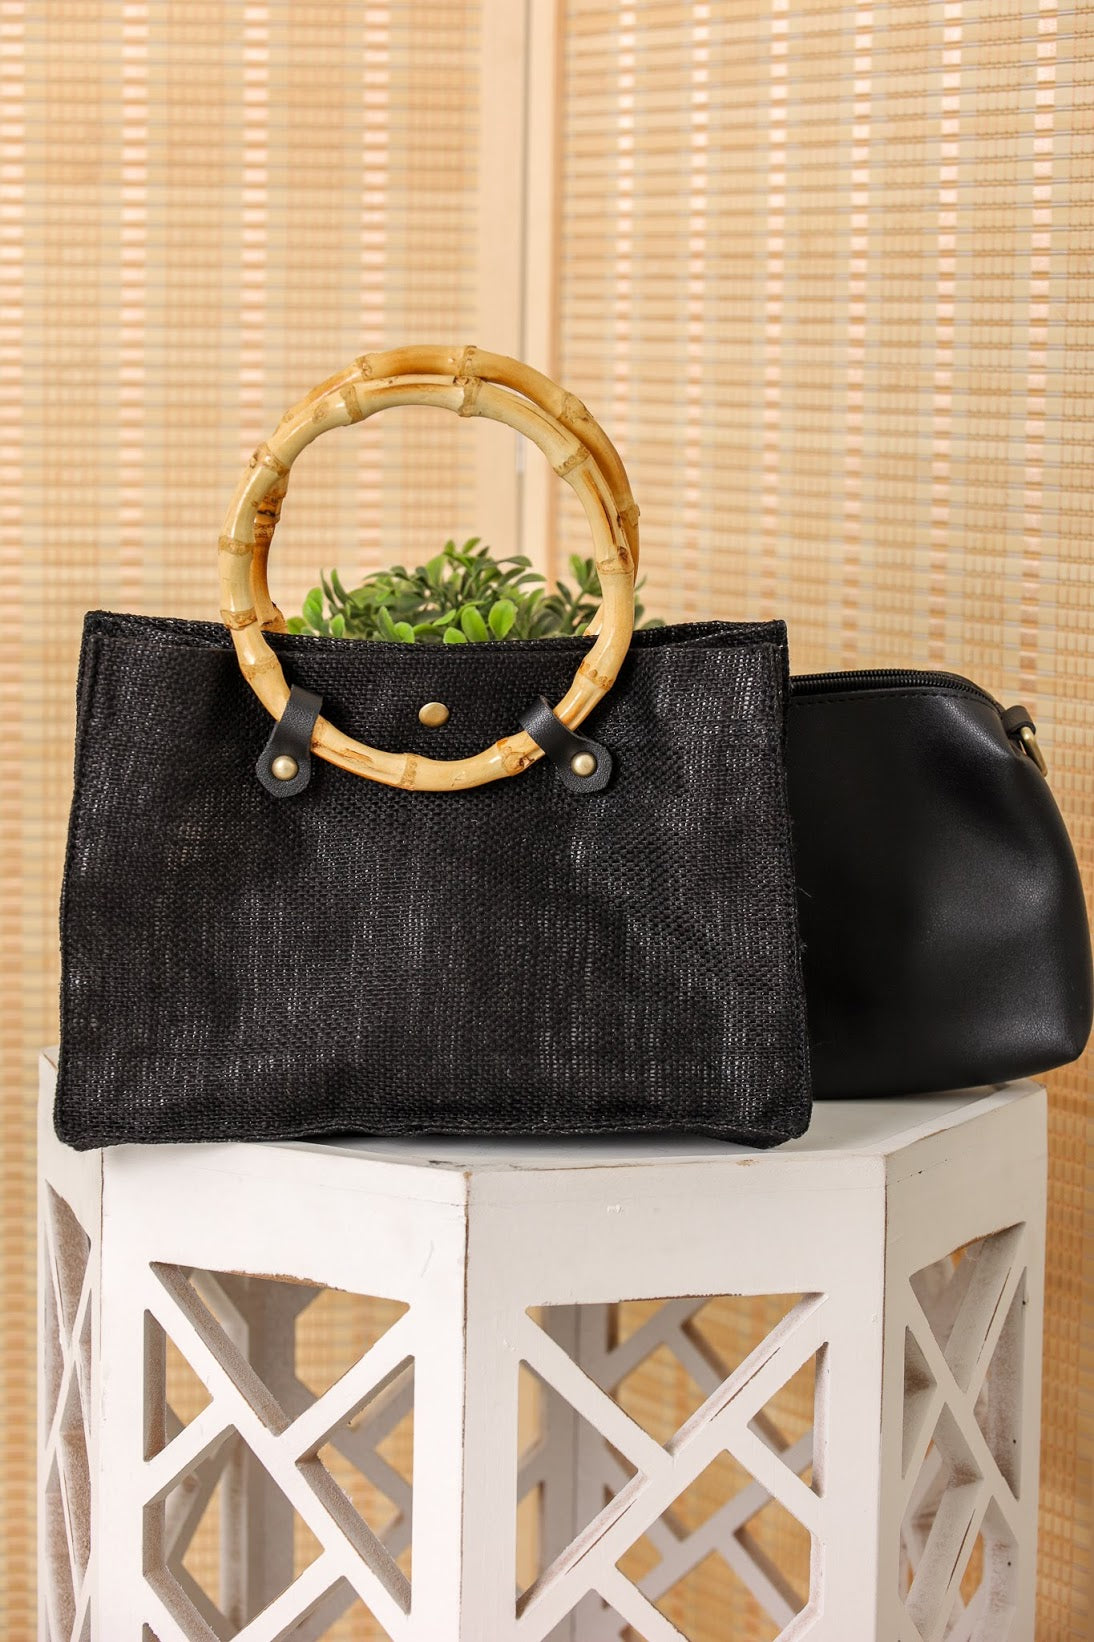 Everything for You Bamboo Handle Linen Bag Set - Black